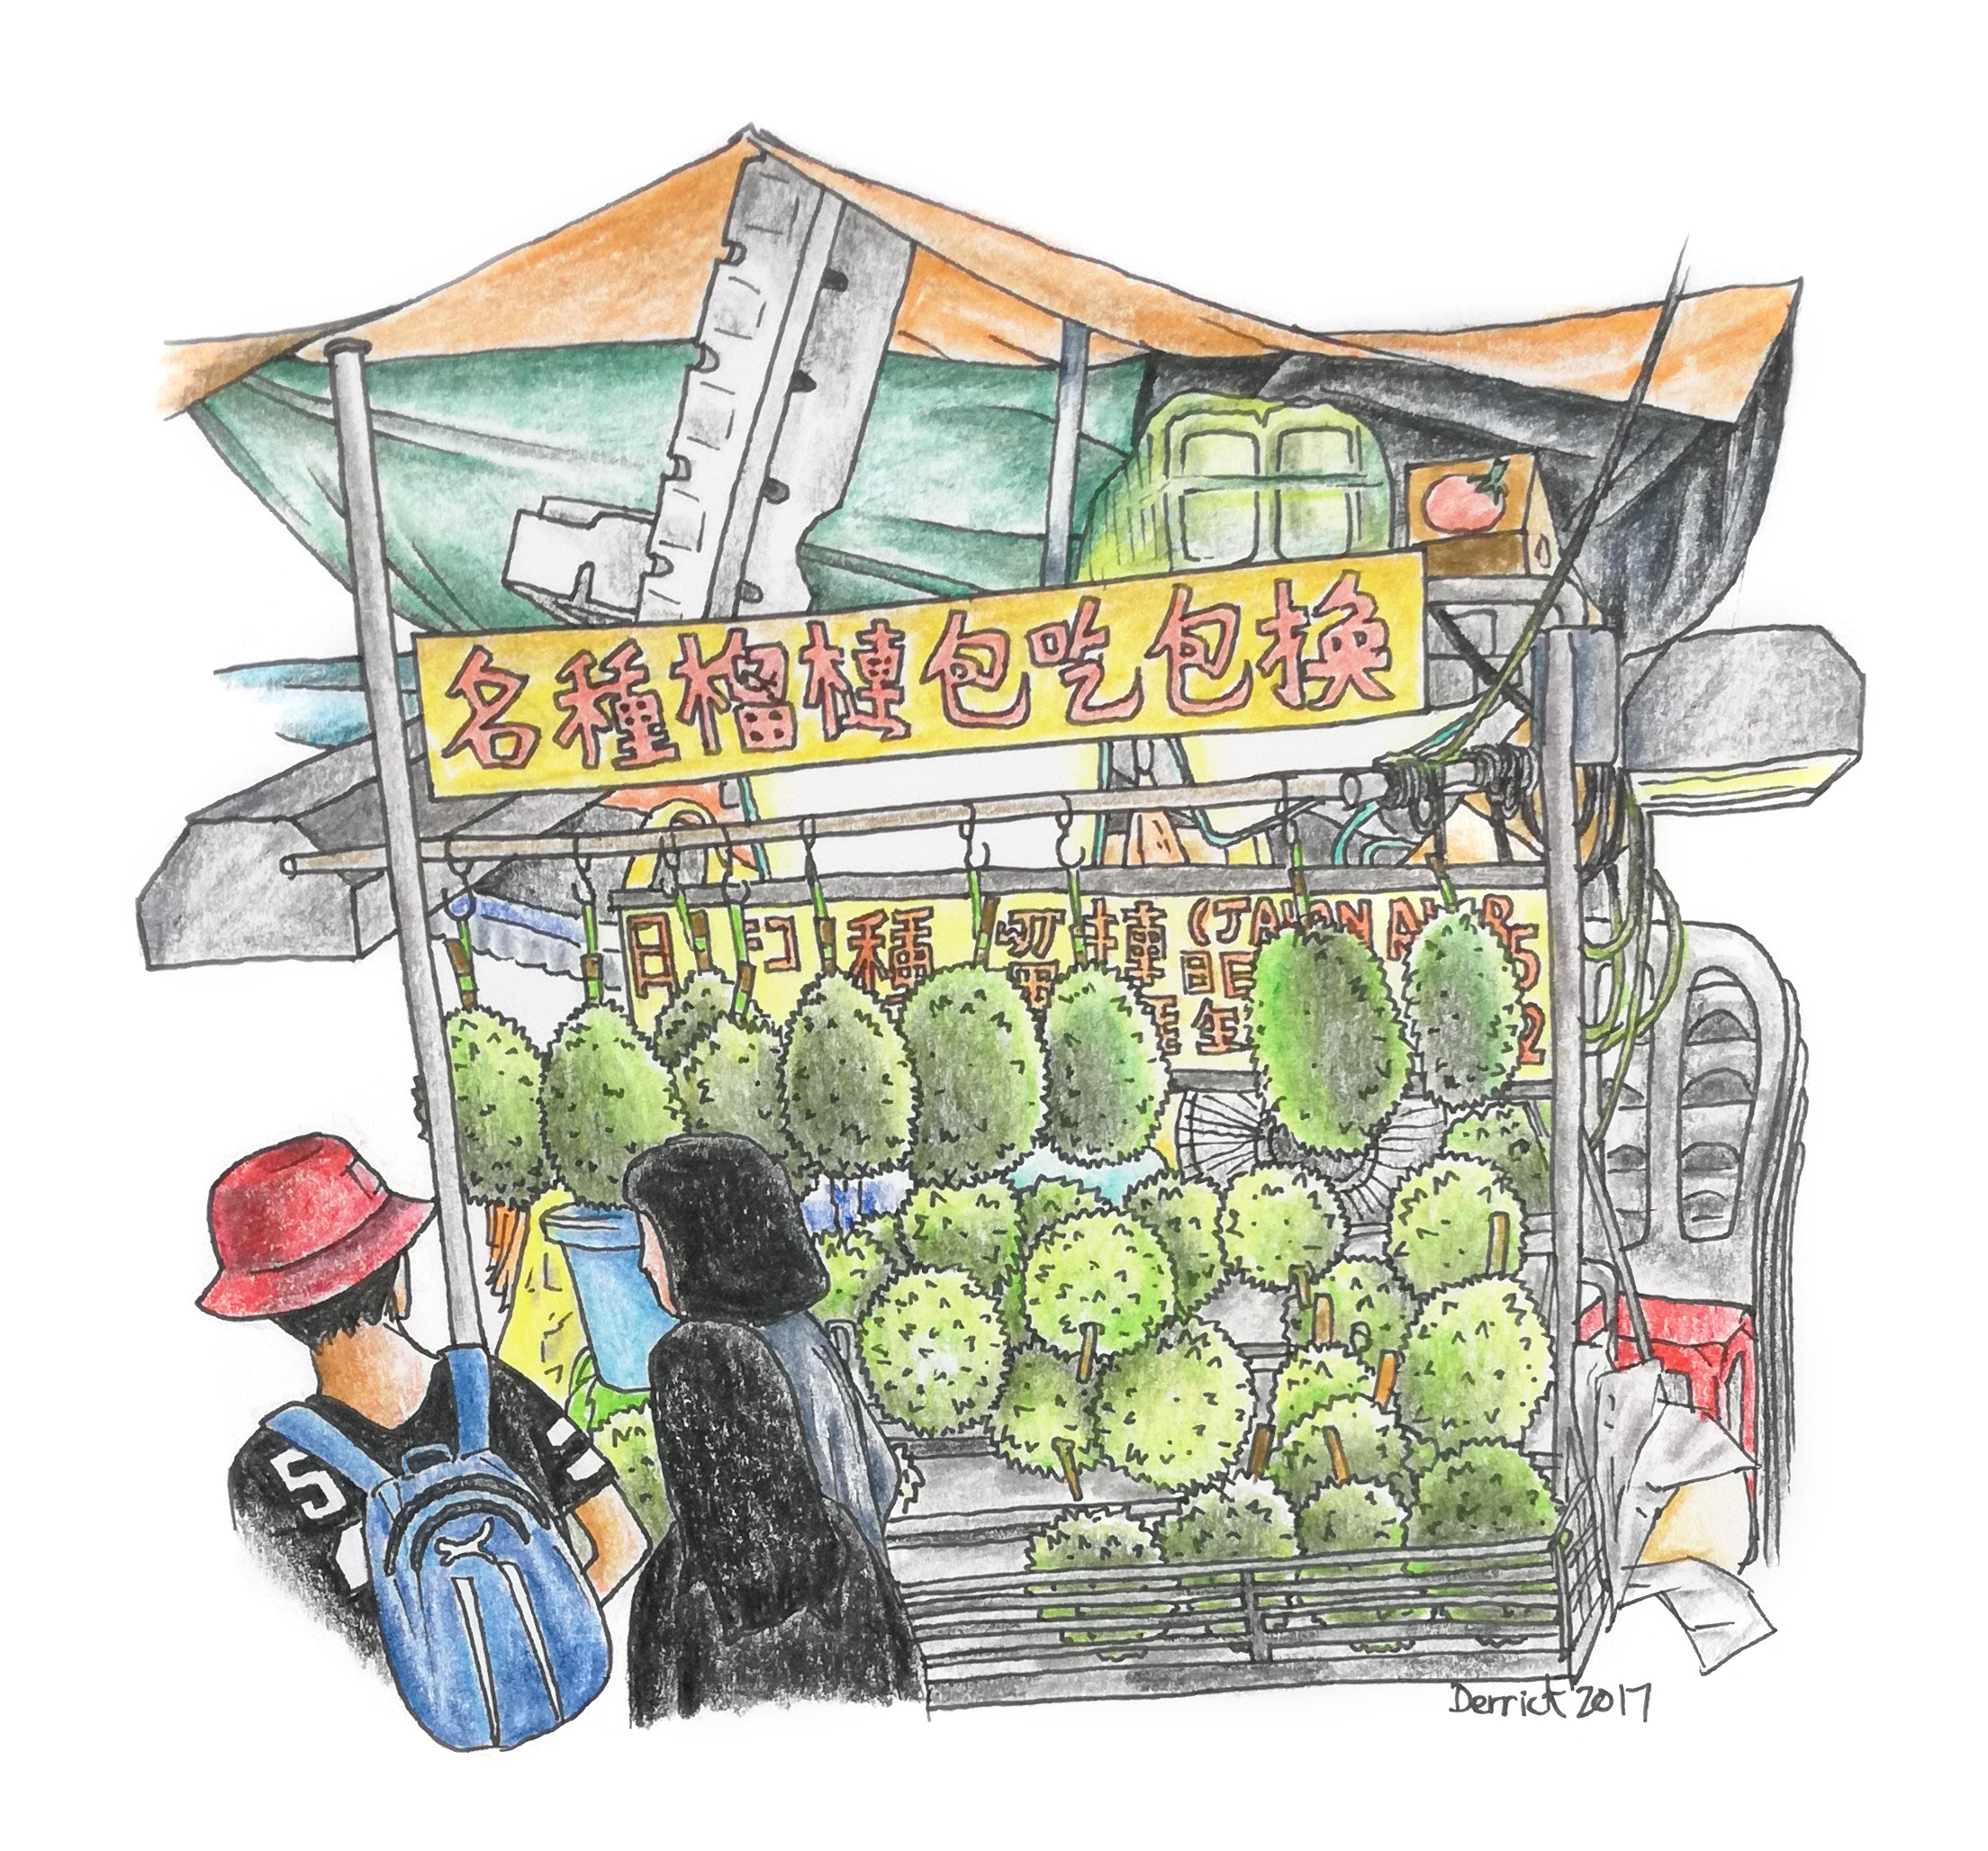 Sketch of a malaysian durian street market stand